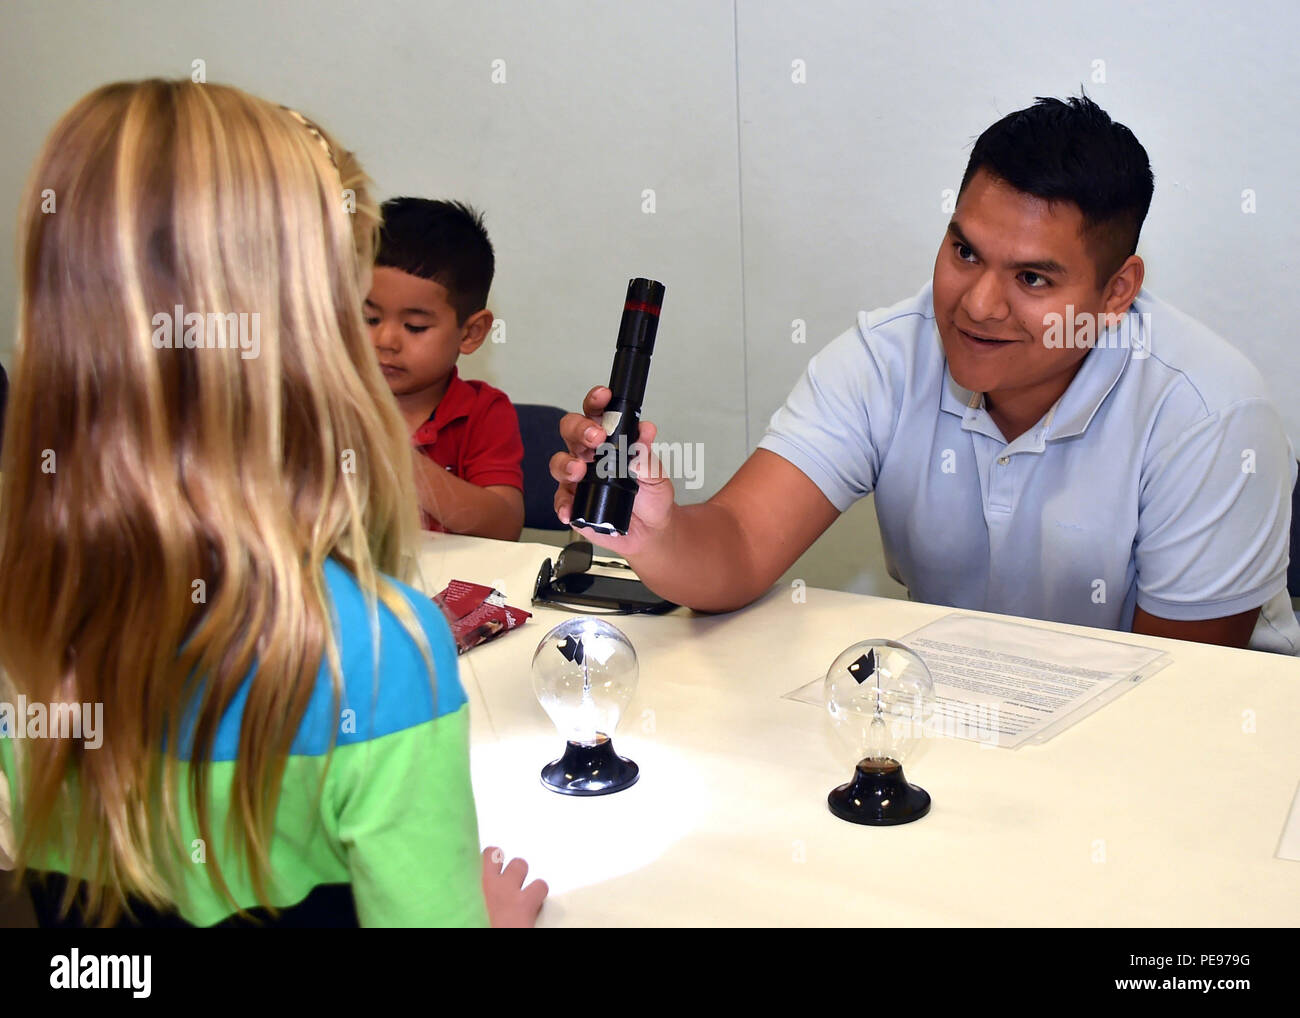 "U.S. Air Force Maj. Luis Muñoz, a section chief for testing and evaluation for the Global Positioning Directorate with the Space and Missile Systems Center demonstrates unique features of magnetism and radiometry to students from Pt. Vicente Elementary School in Rancho Palos Verdes, Calif., as part of a STEM event titled ""Science Night"" Nov. 13, 2015.  (U.S. Air Force photo by Sarah Corrice/RELEASED.) - Stock Image"